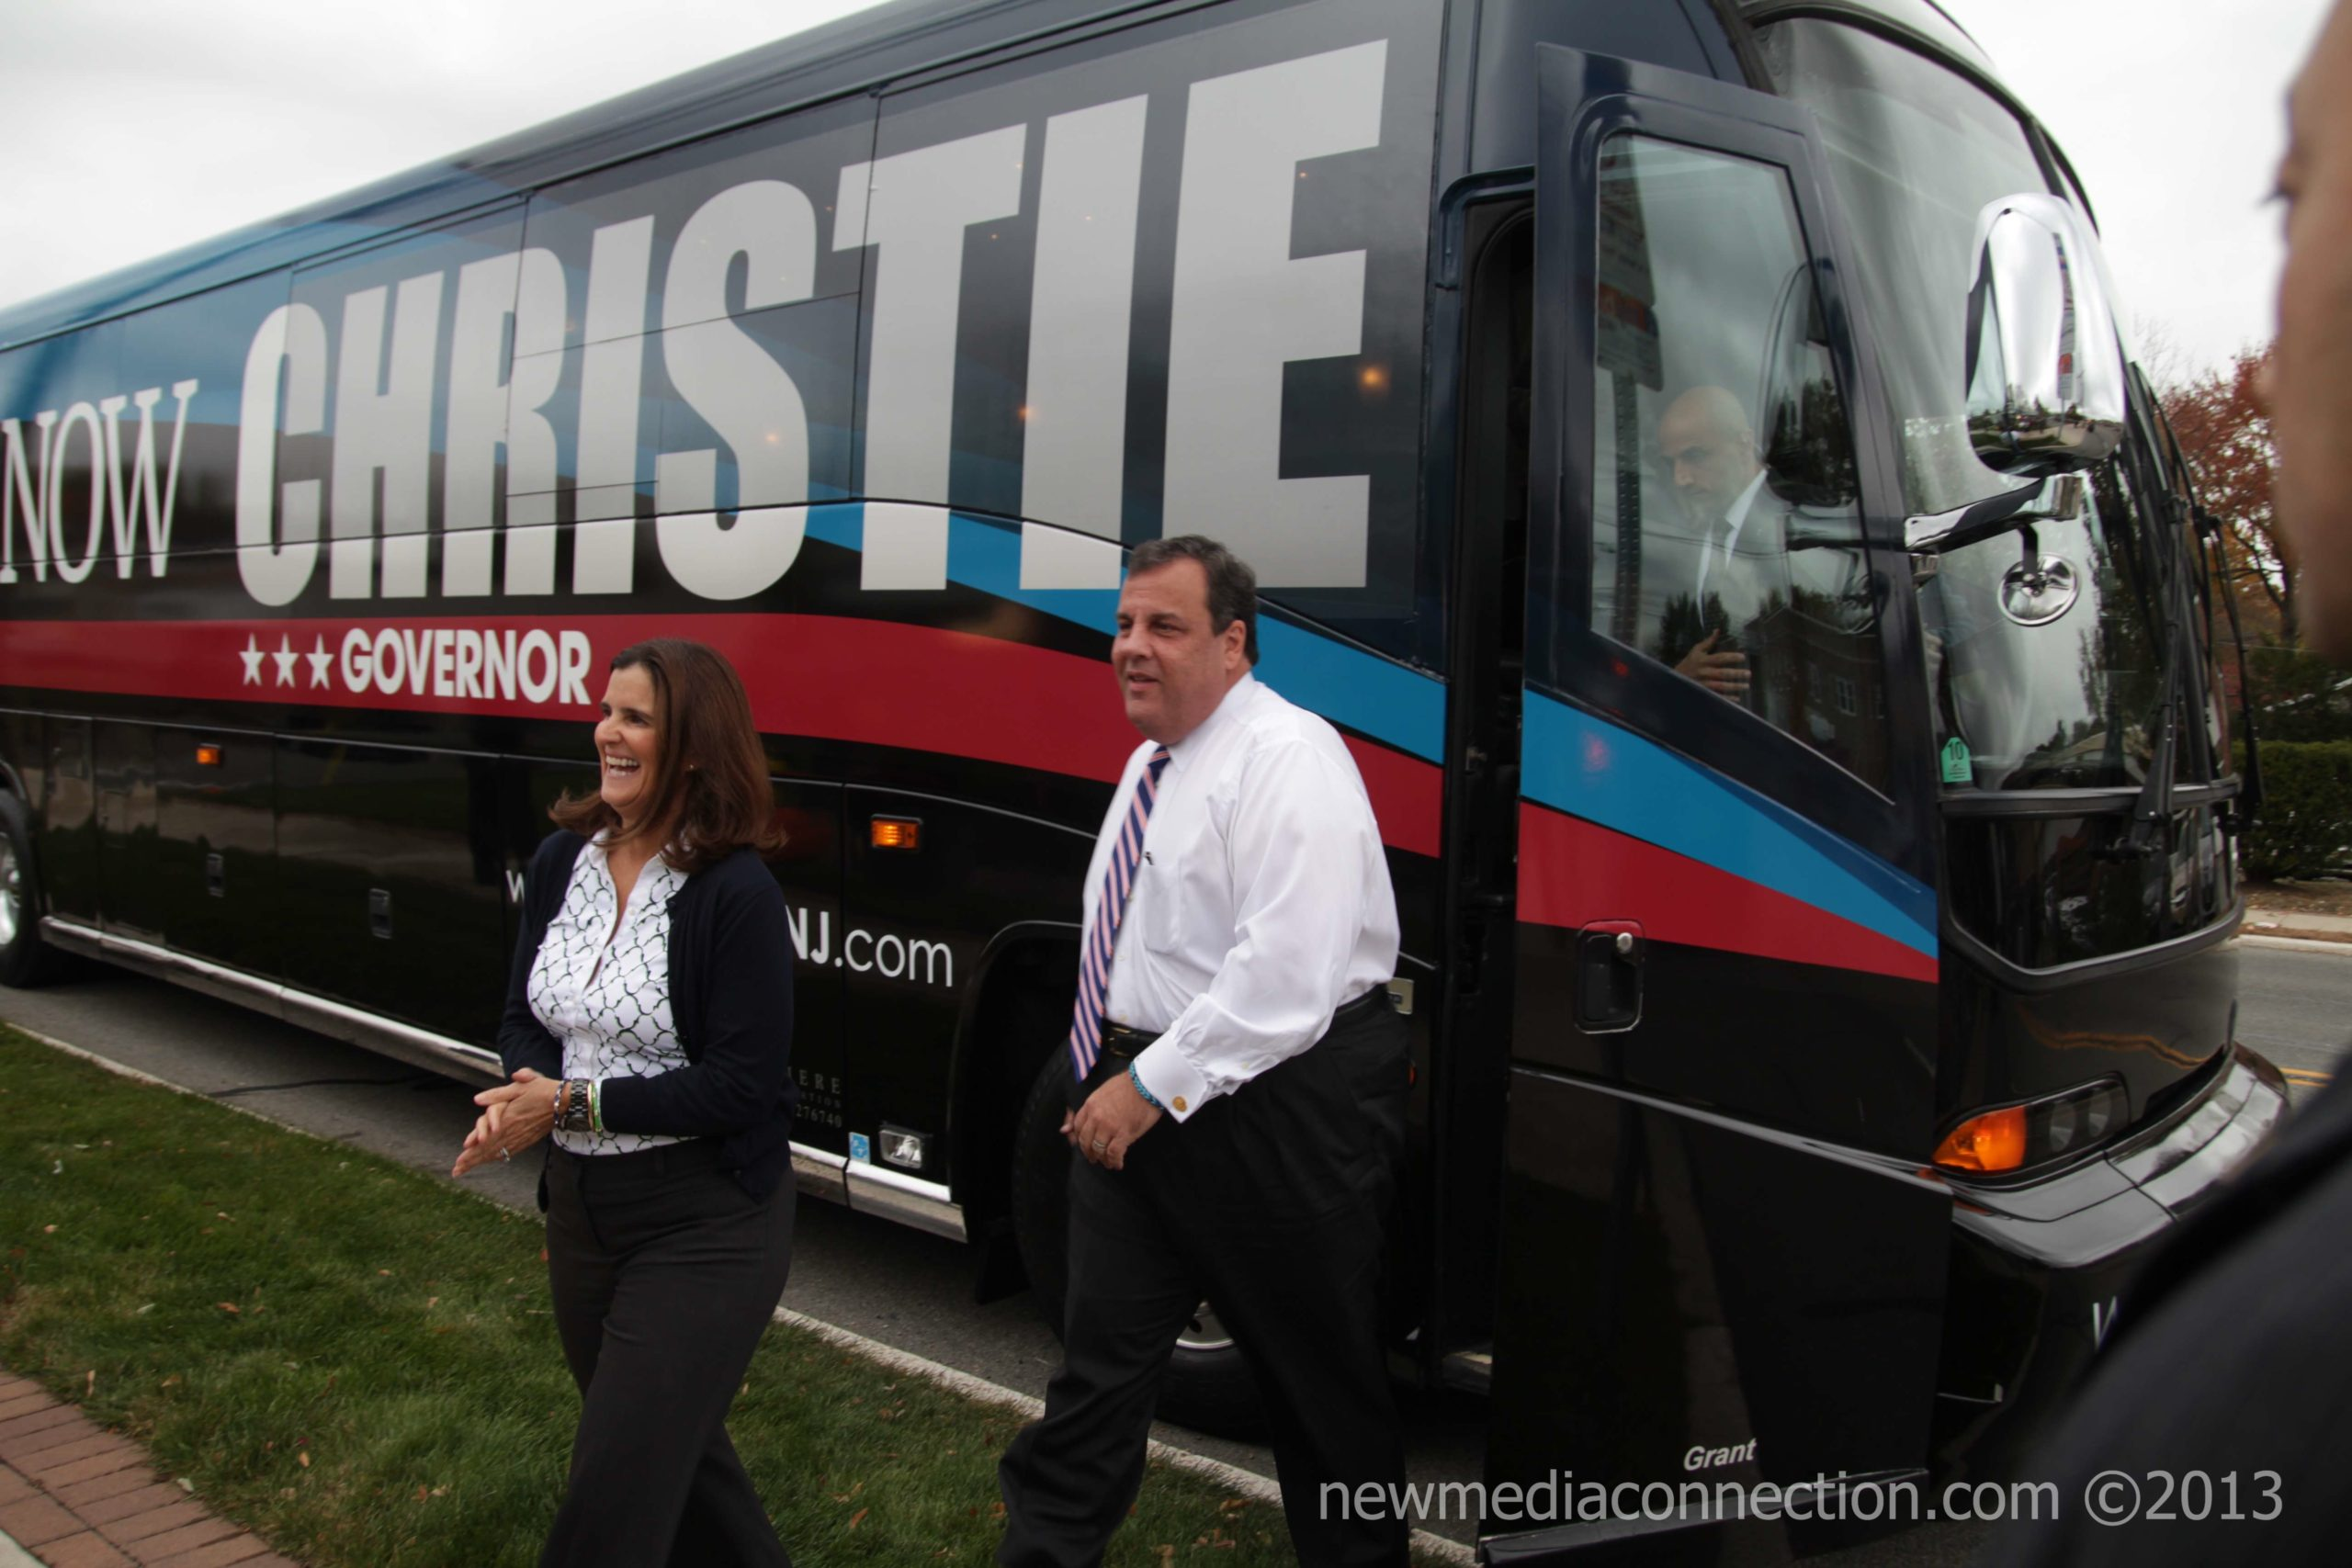 Governor Chris Christie Bus Tour Kickoff Event